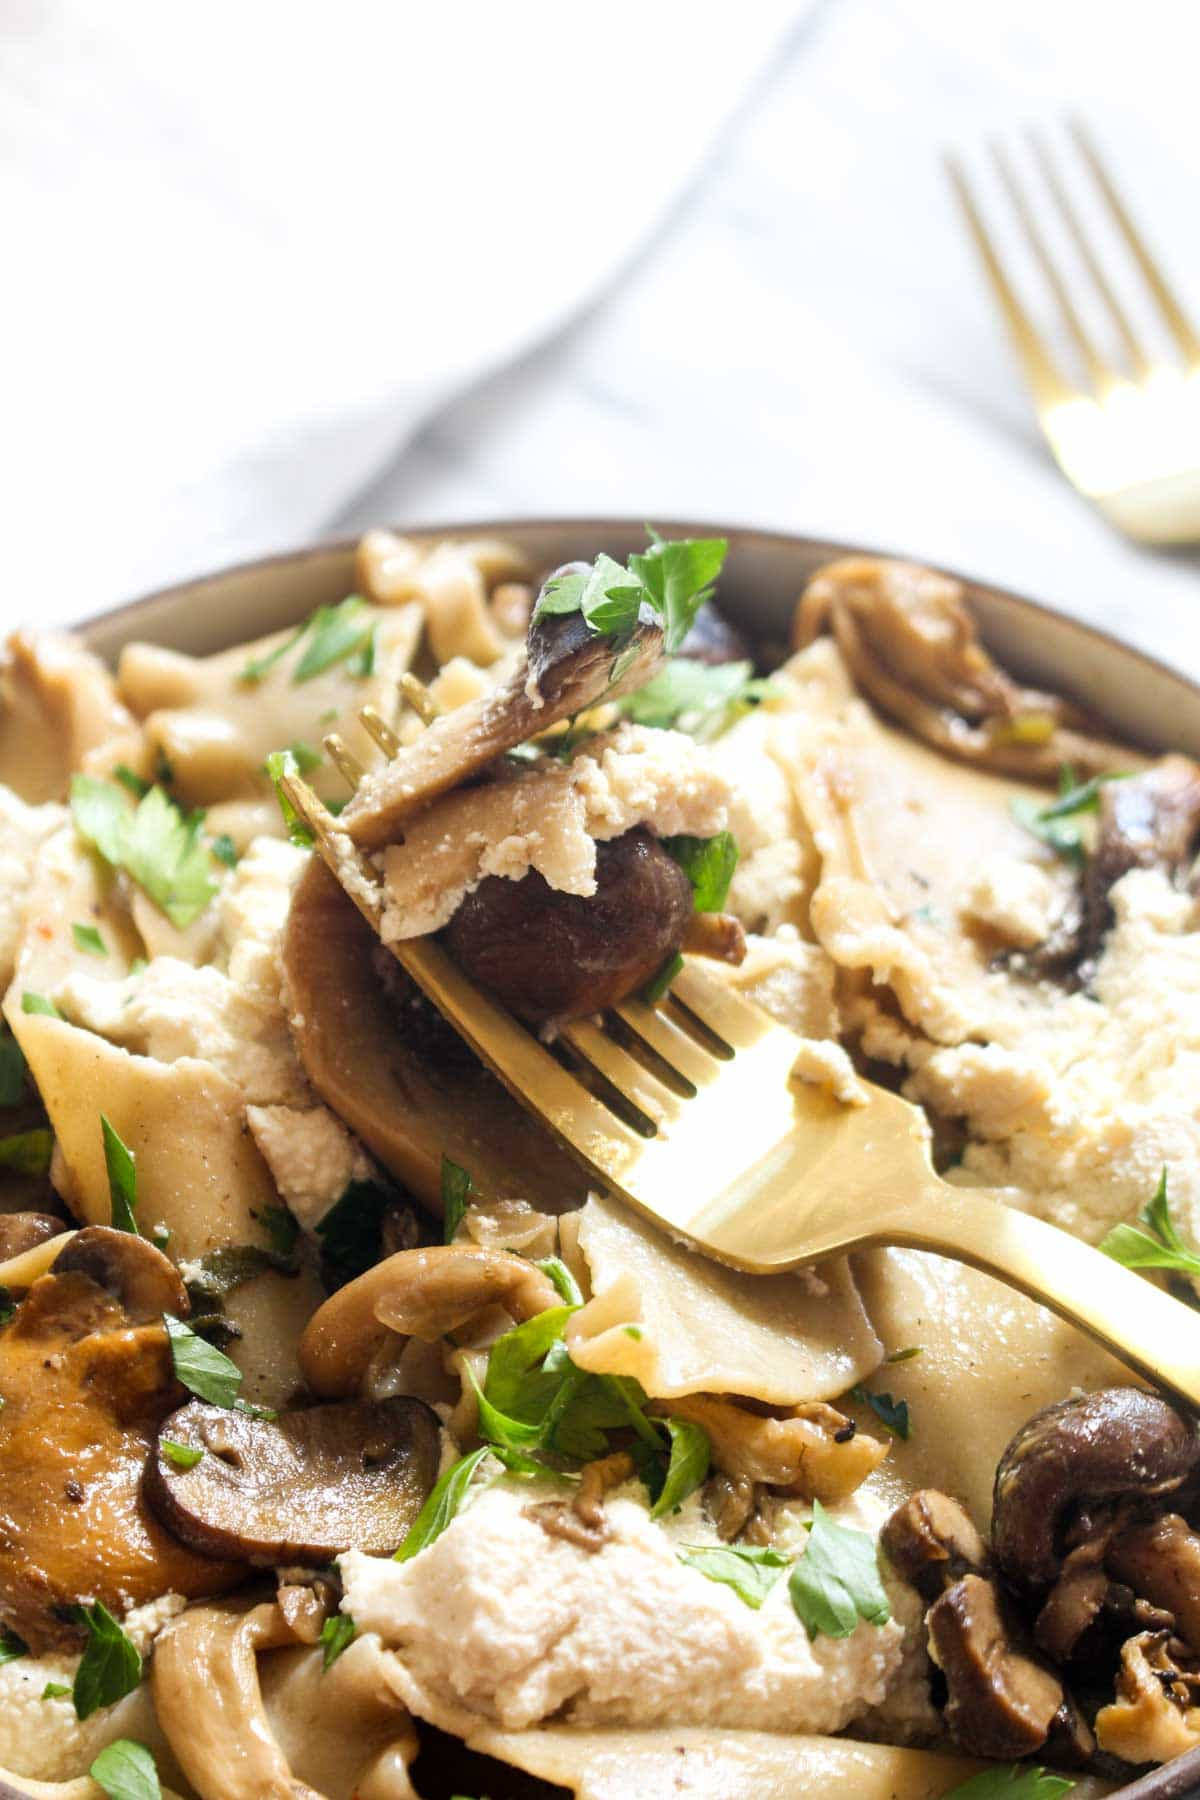 This Broken Wild Mushroom Lasagna recipe is warm, earthy and impressive, but is a secretly an easy to make and healthy gluten free and vegan dish!